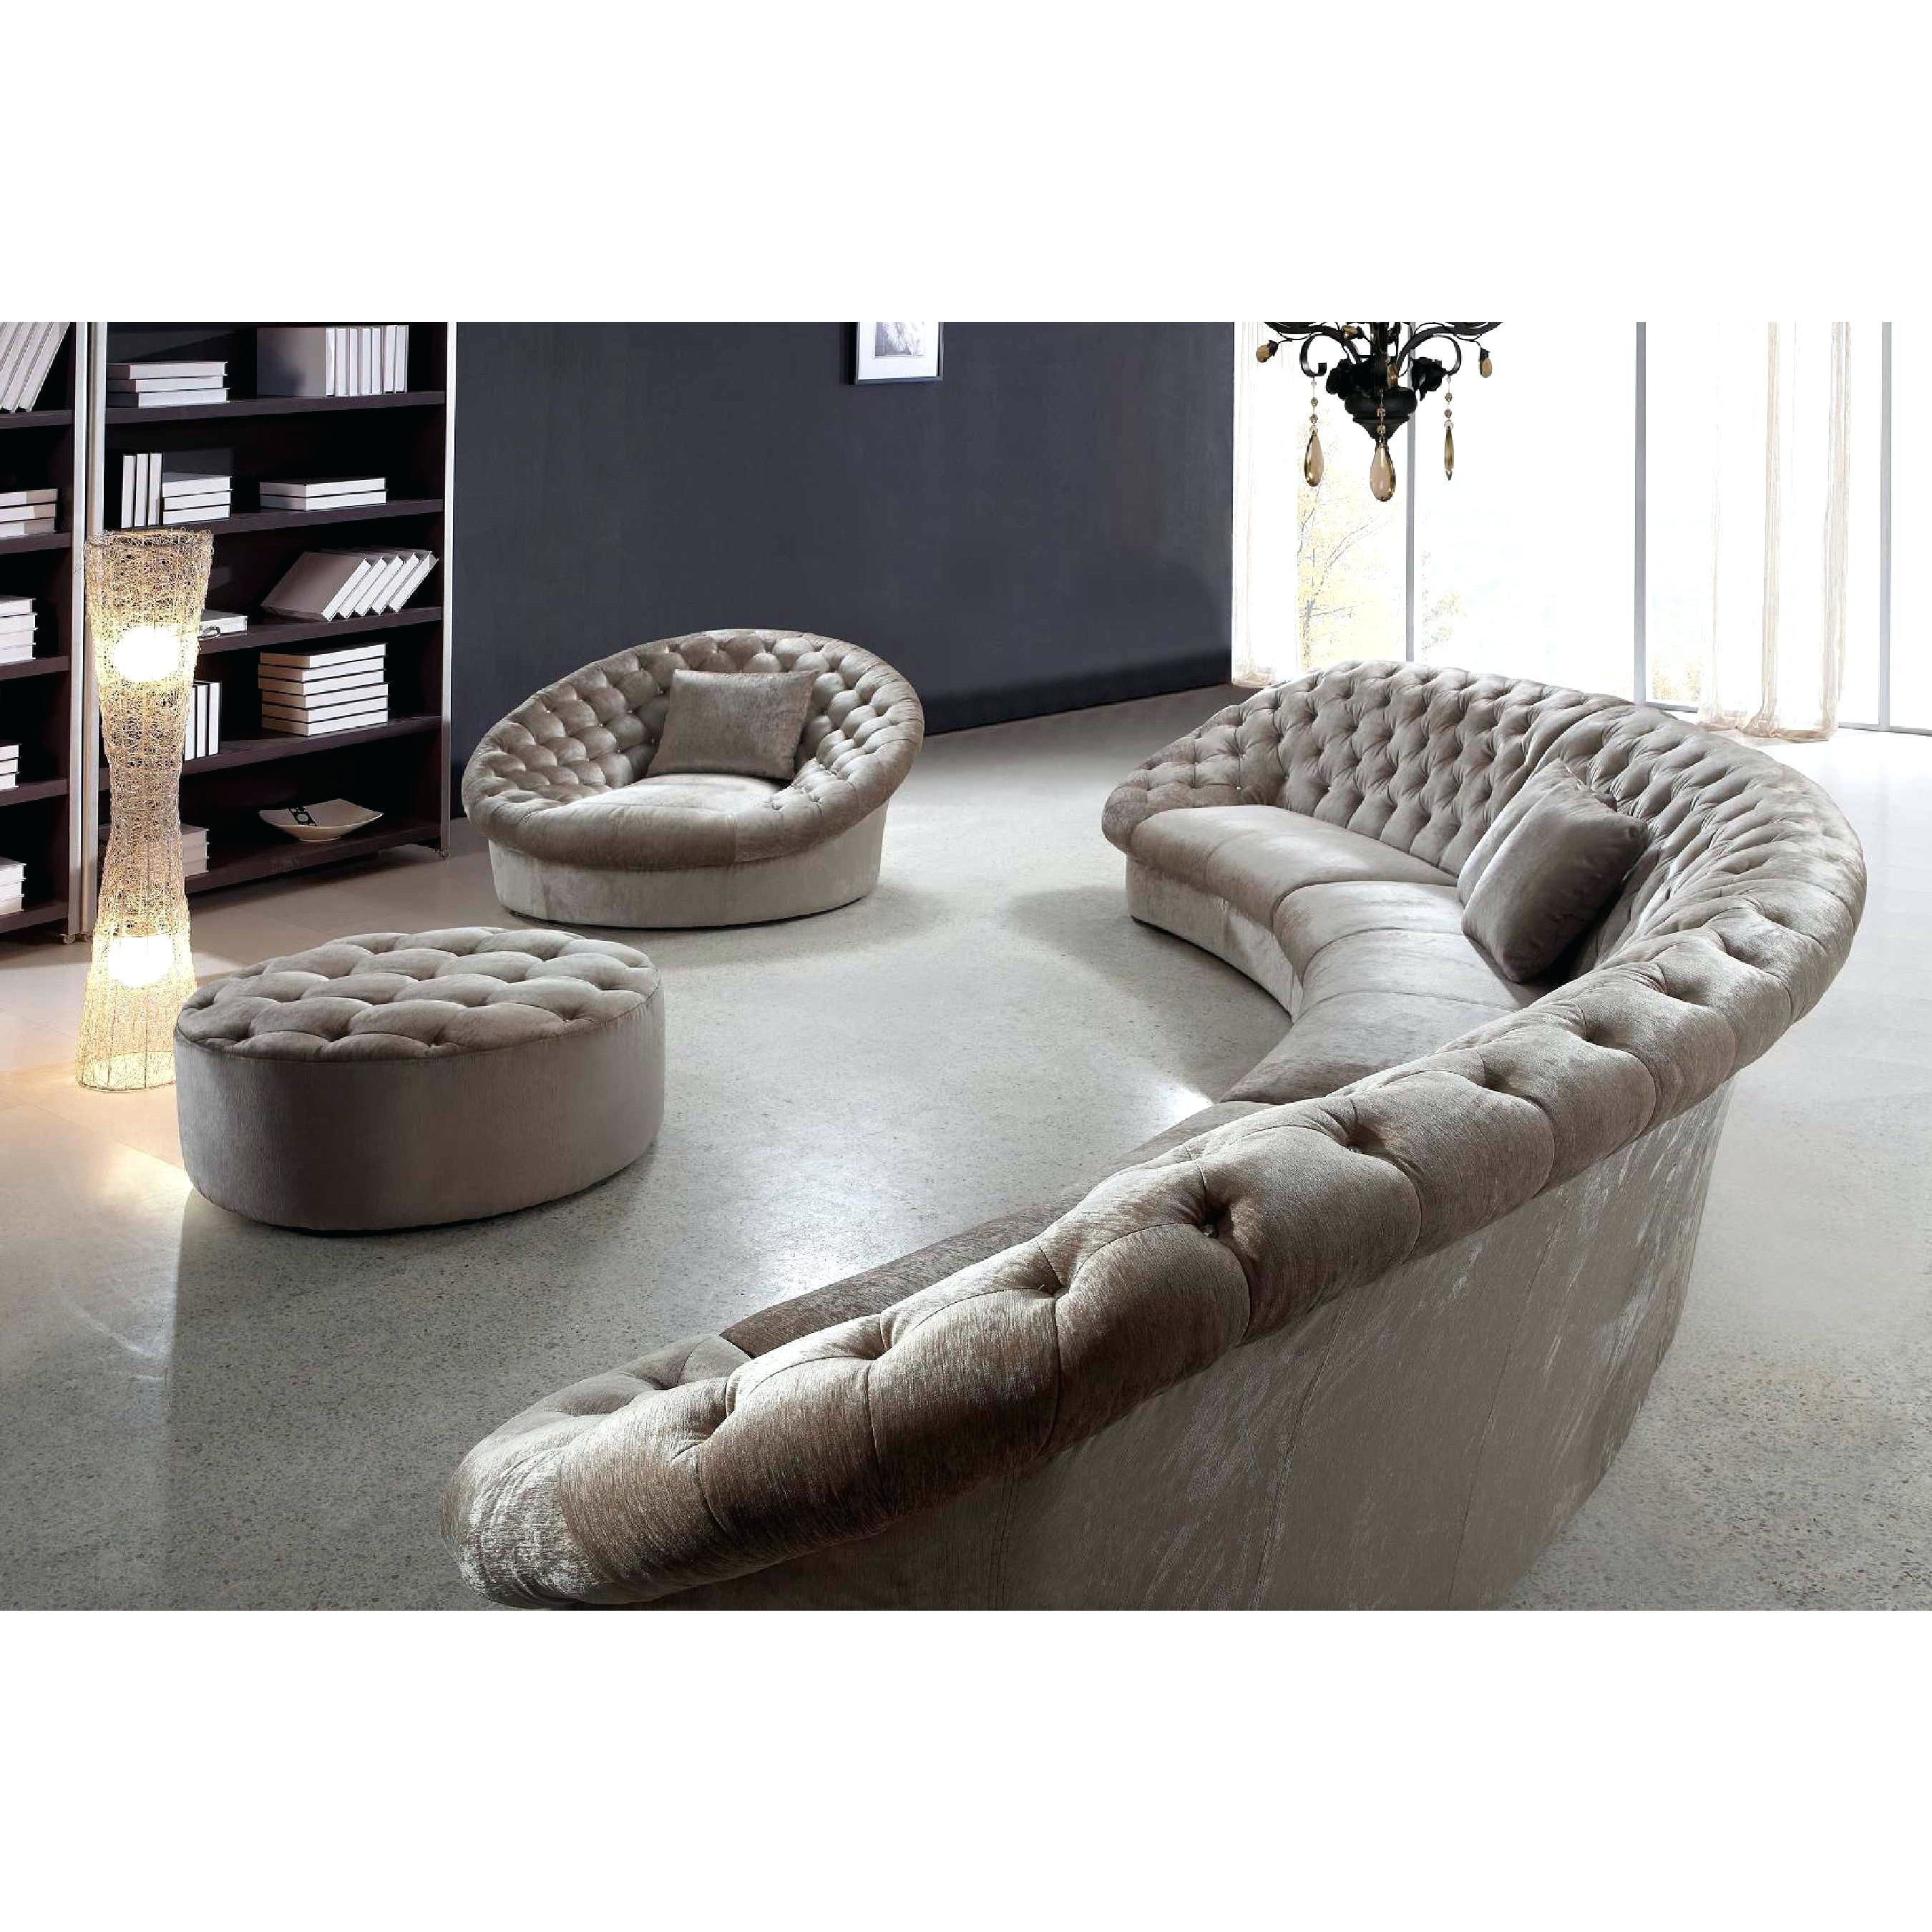 awesome two seater recliner sofa photo-Superb Two Seater Recliner sofa Construction